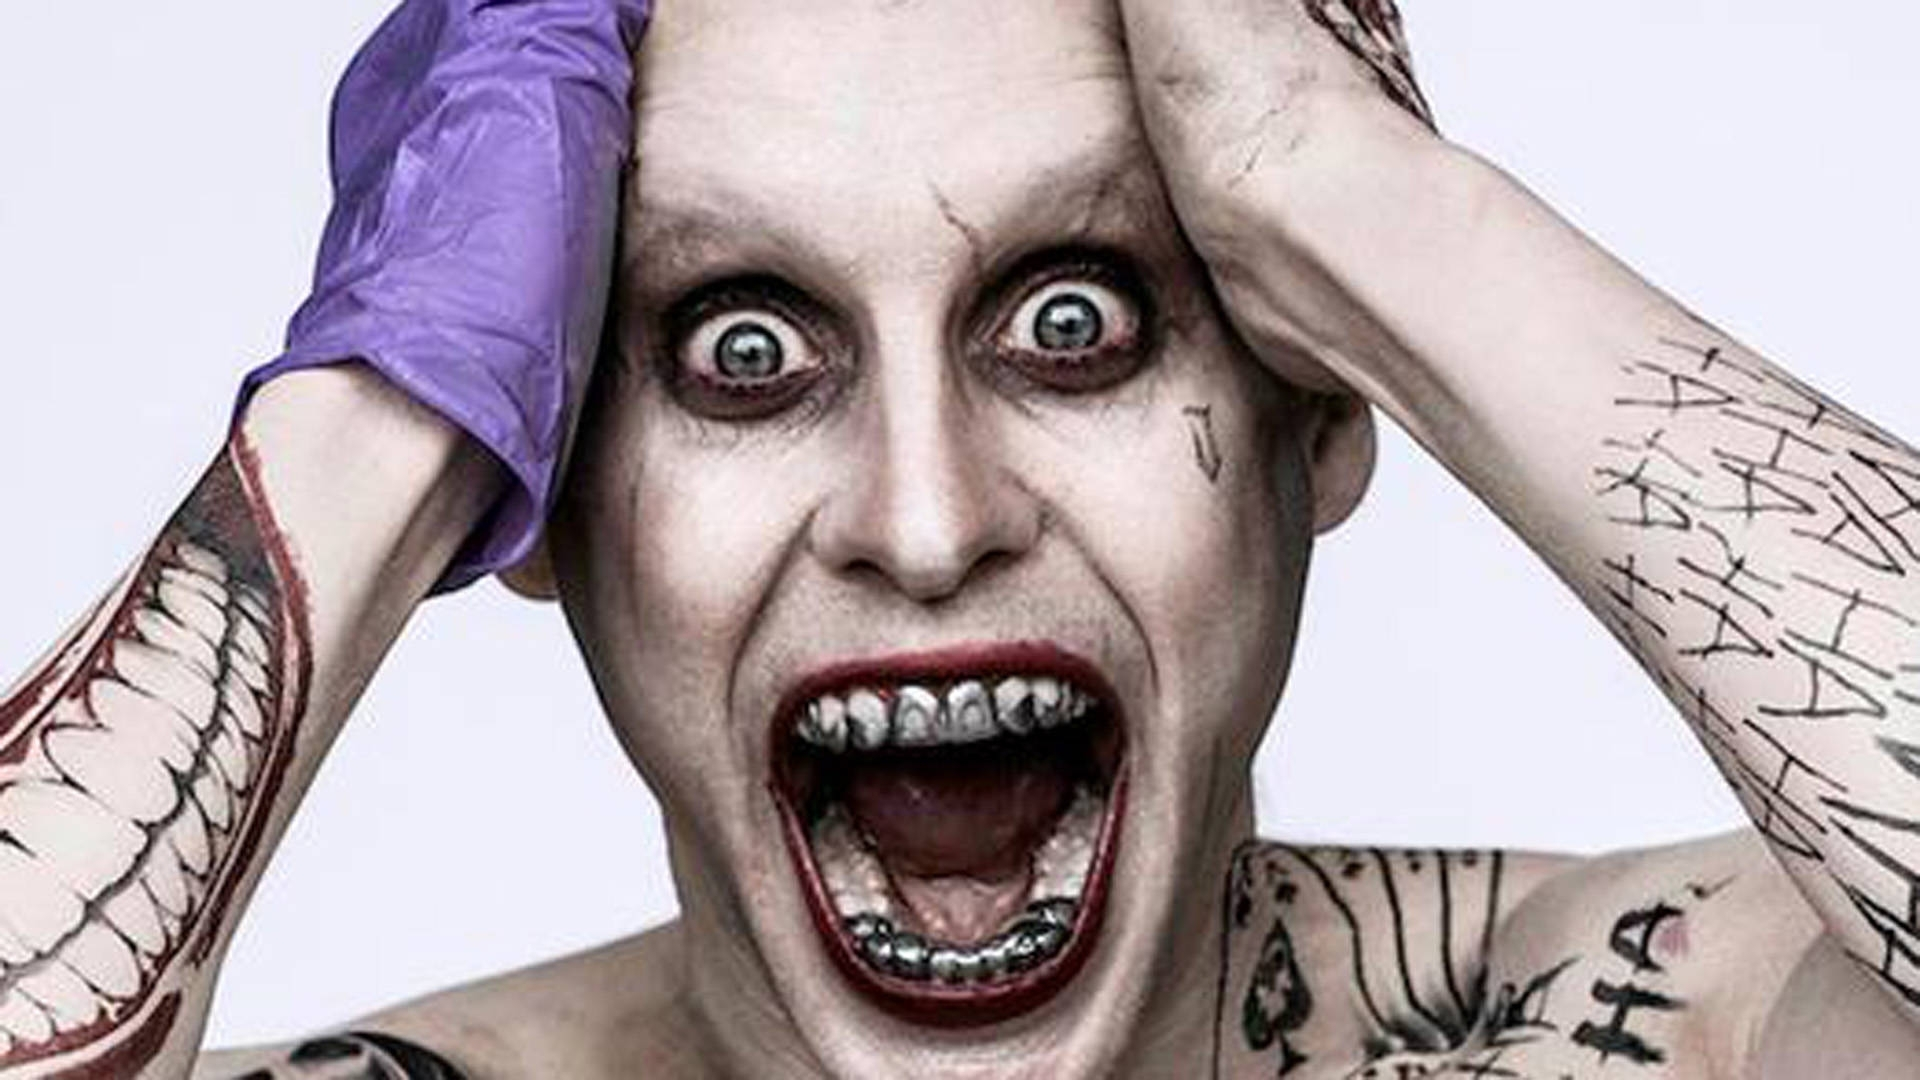 were joker's teeth changed in suicide squad?